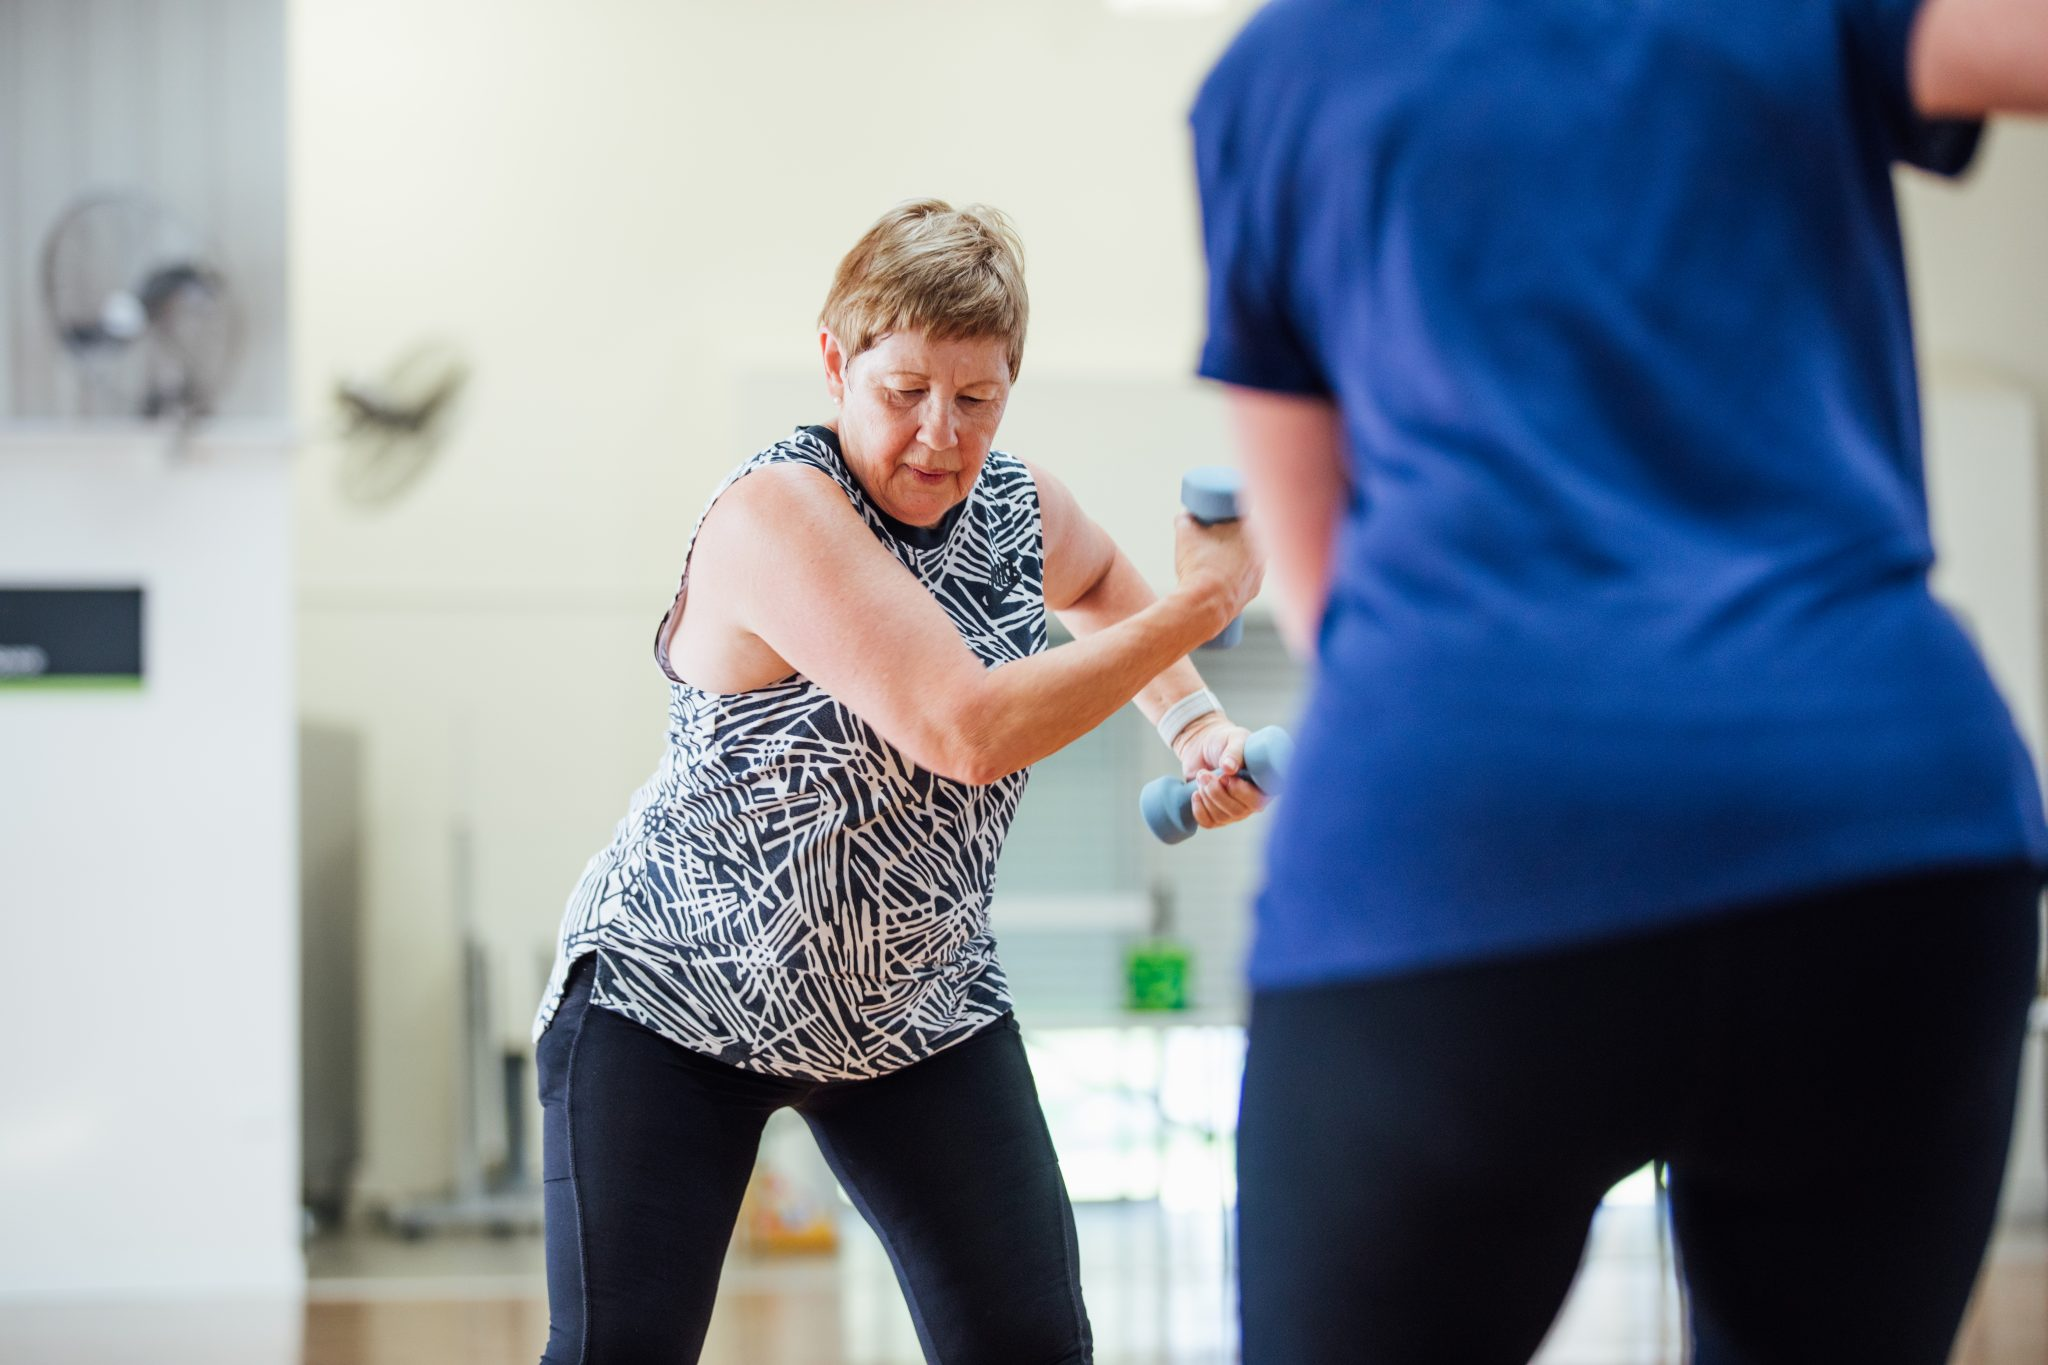 3 ways to practice body awareness and prevent falls